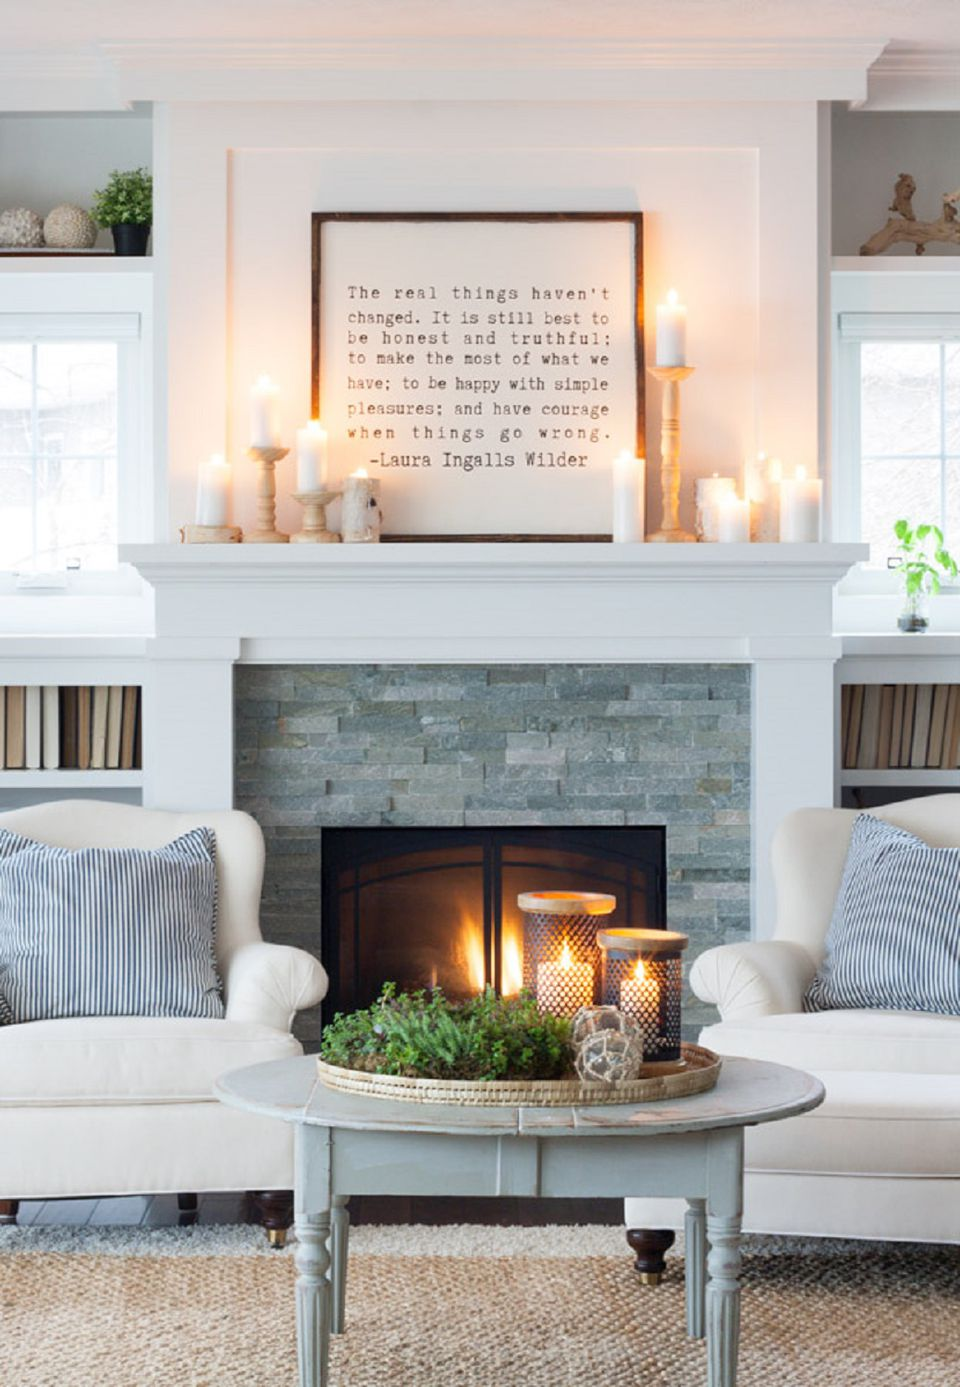 . 15 Ways to Decorate Your Home for Winter